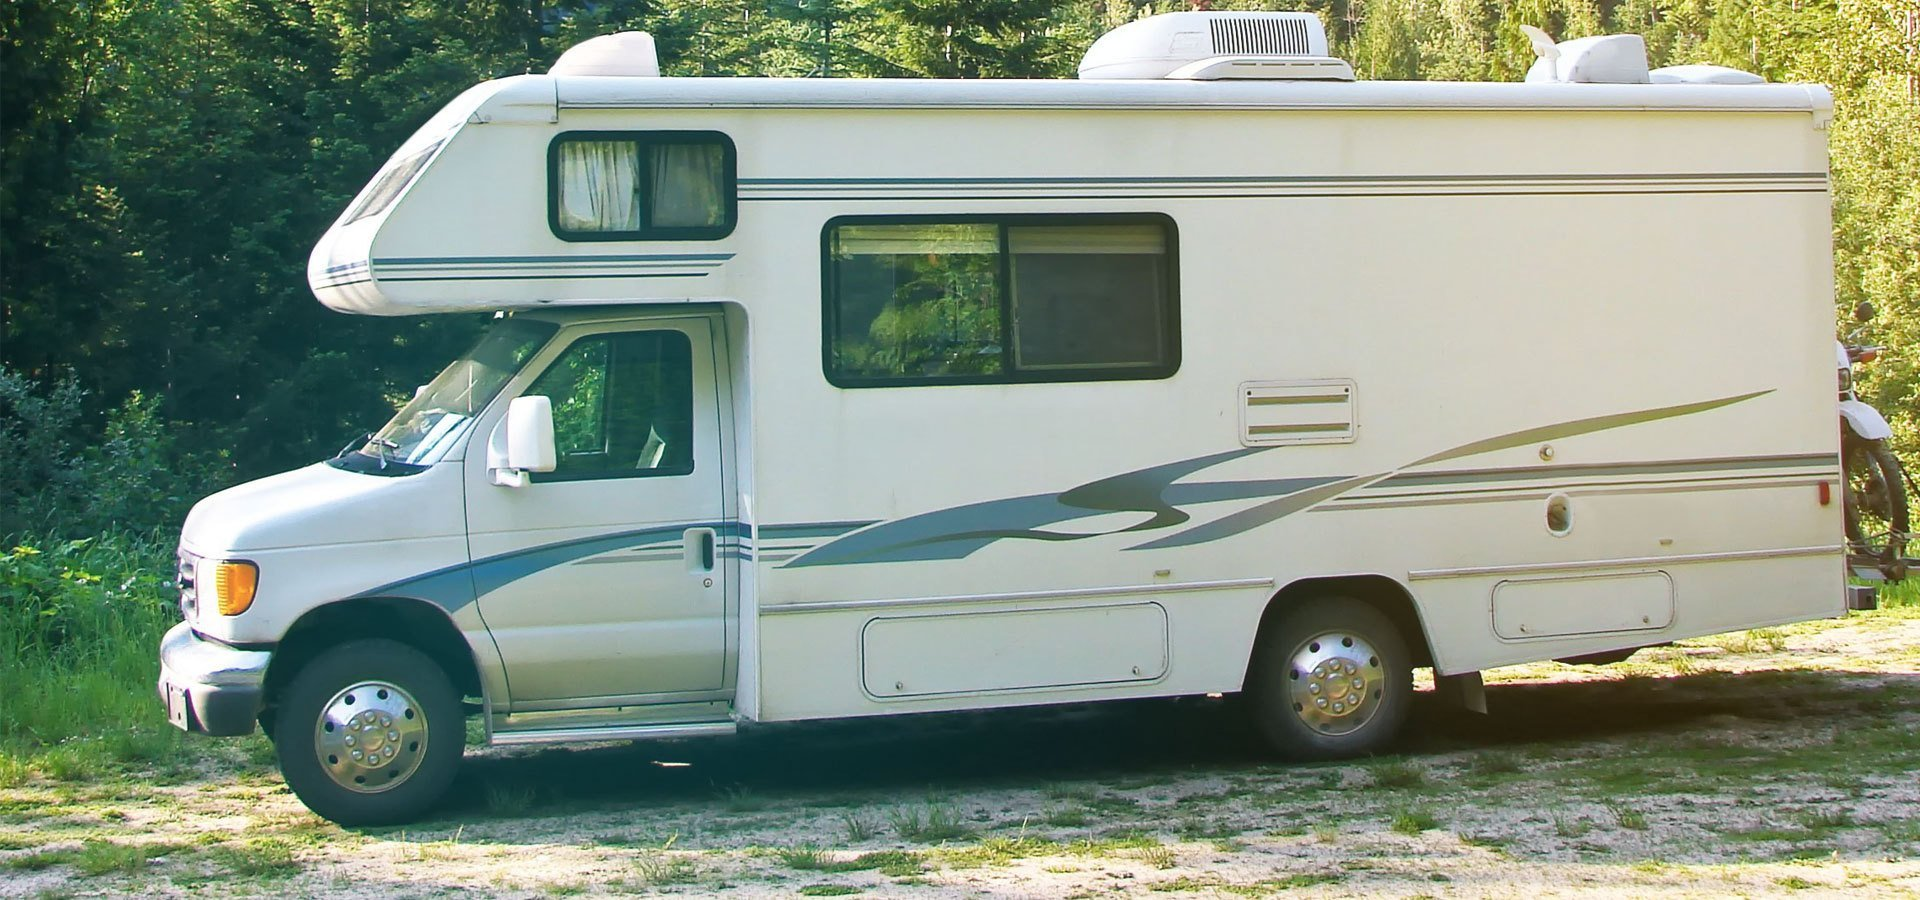 Parked new motorhome